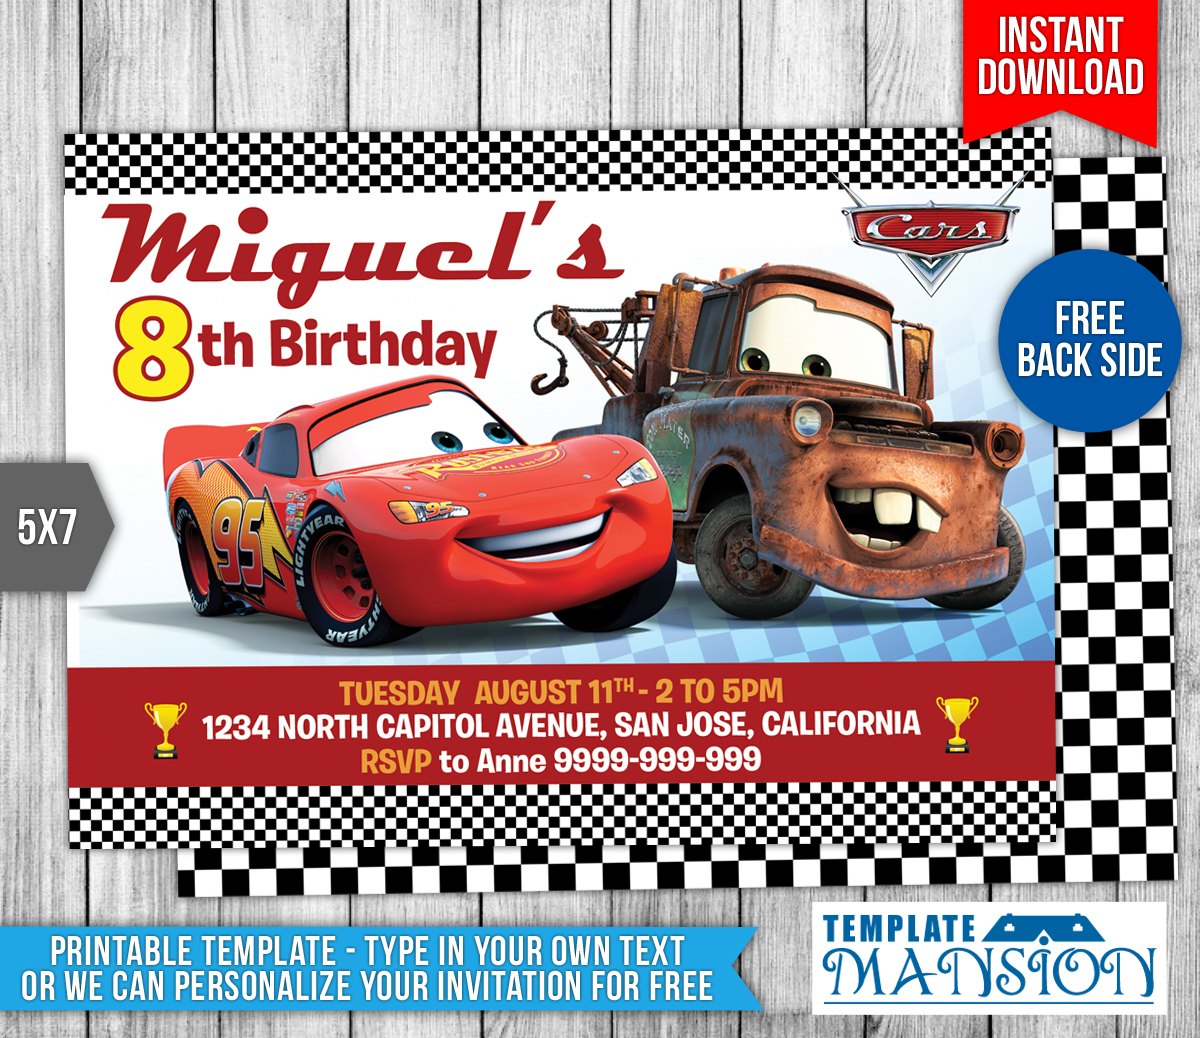 Disney Cars Birthday Invitation 1 by templatemansion on DeviantArt – Disney Cars Birthday Invites